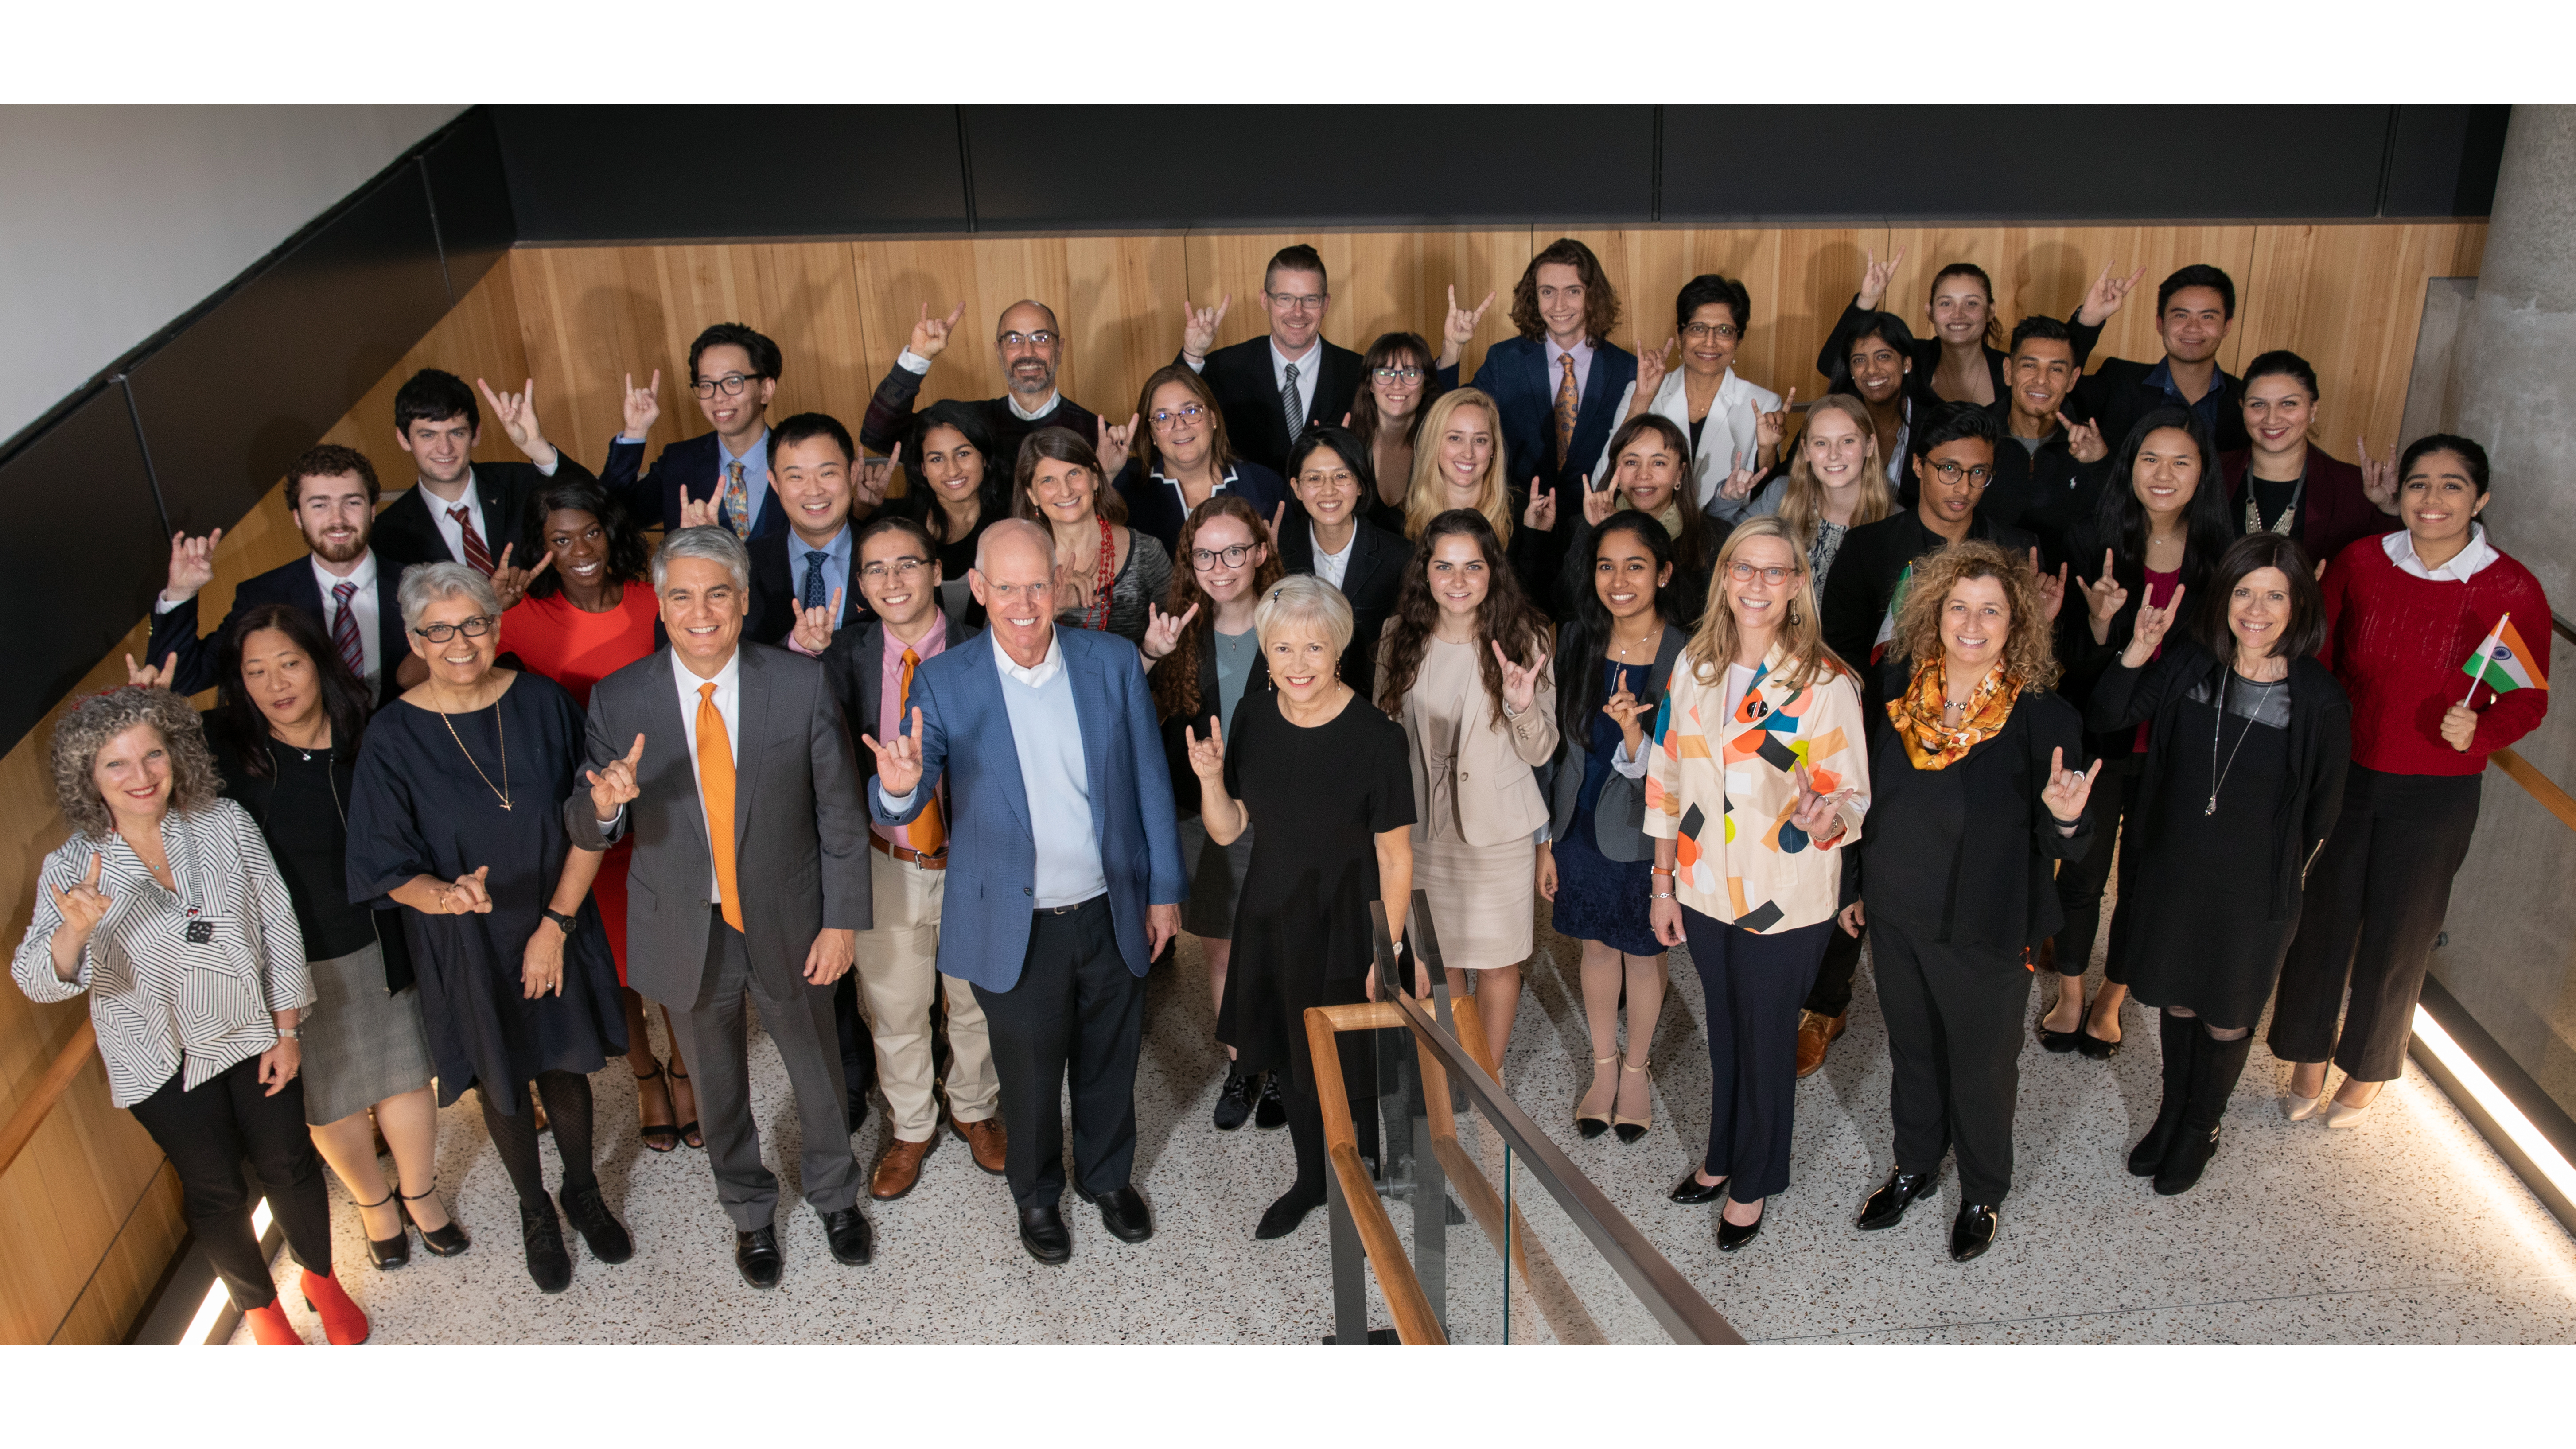 The winning teams of the president's award pose with President Fenves, Sonia Feigenbaum, and other leaders of the university